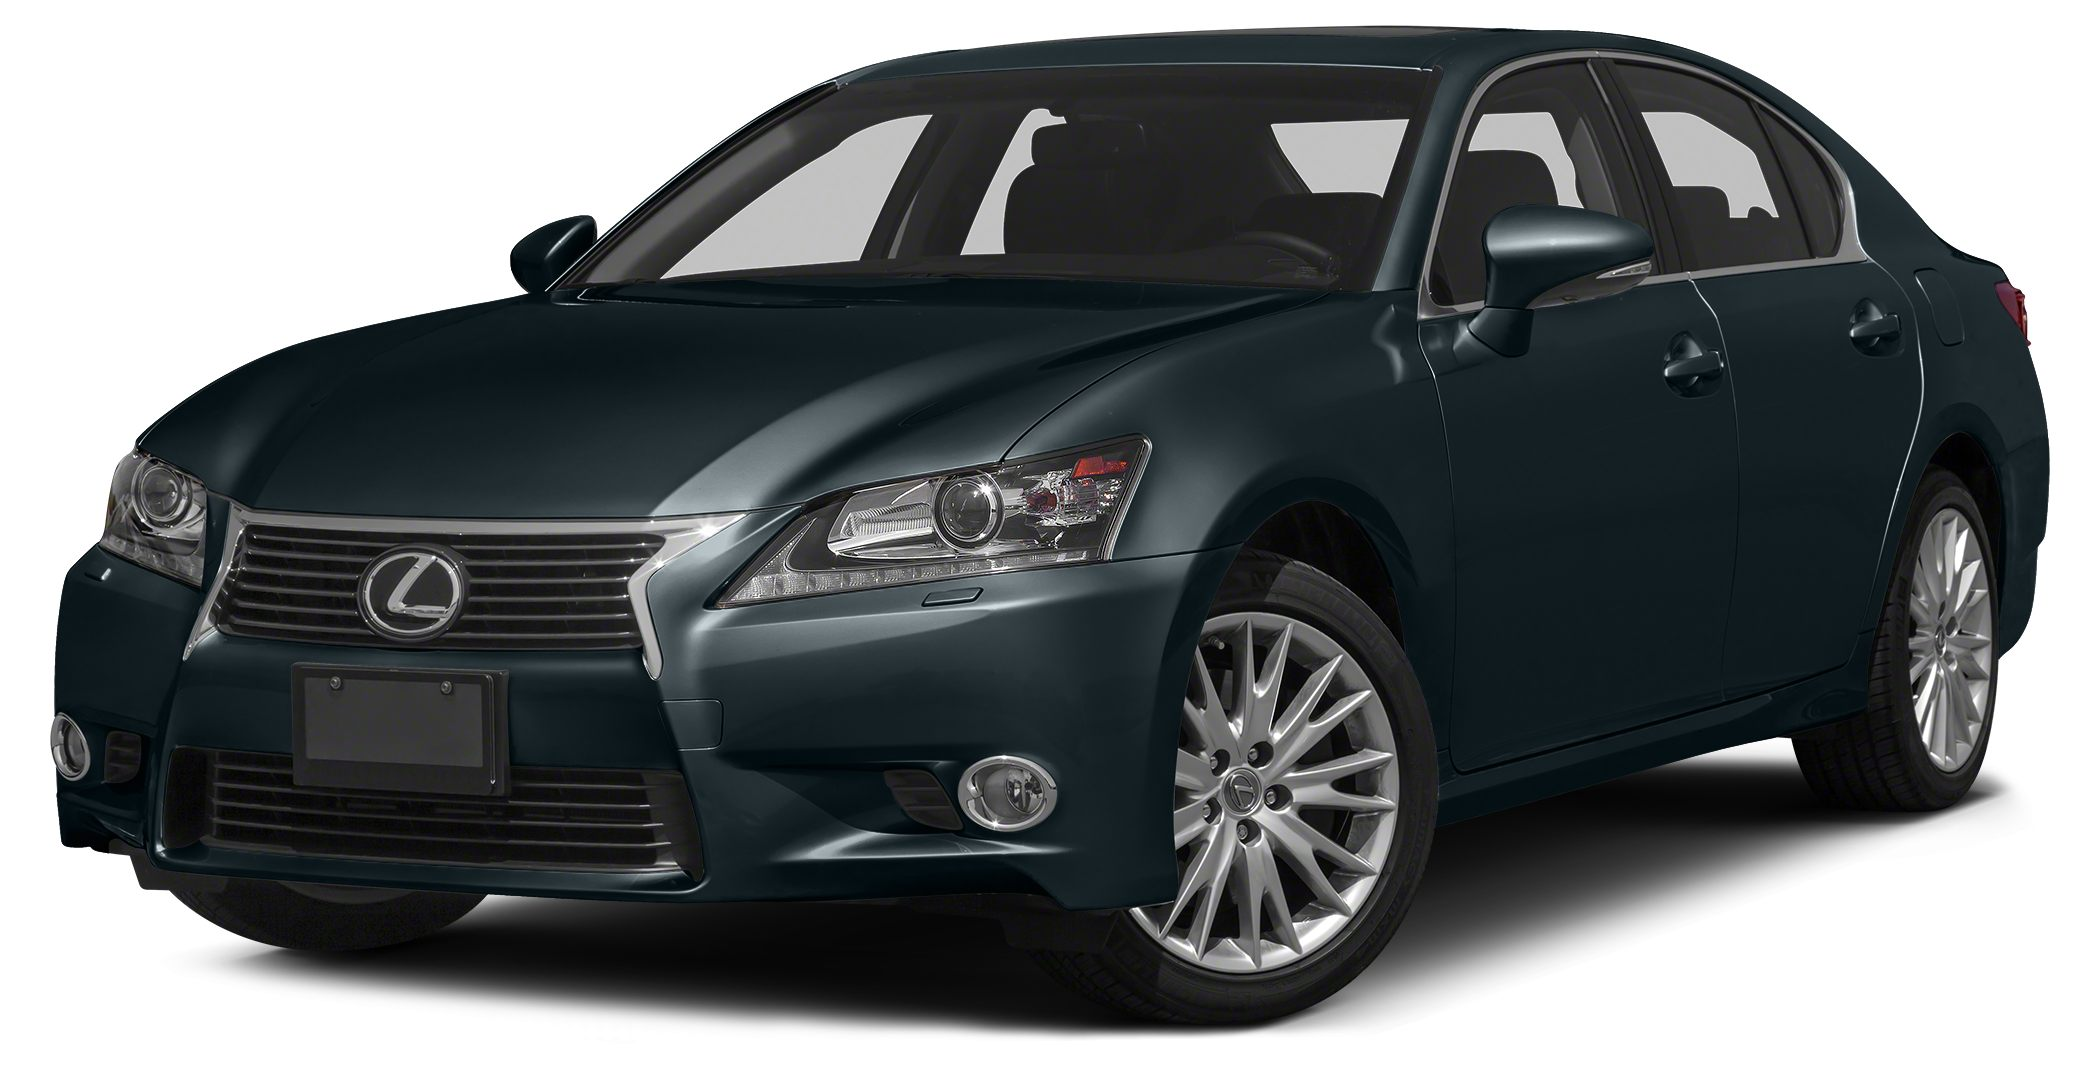 2013 Lexus GS 350 Base ITS OUR 50TH ANNIVERSARY HERE AT MARTYS AND TO CELEBRATE WERE OFFERING TH